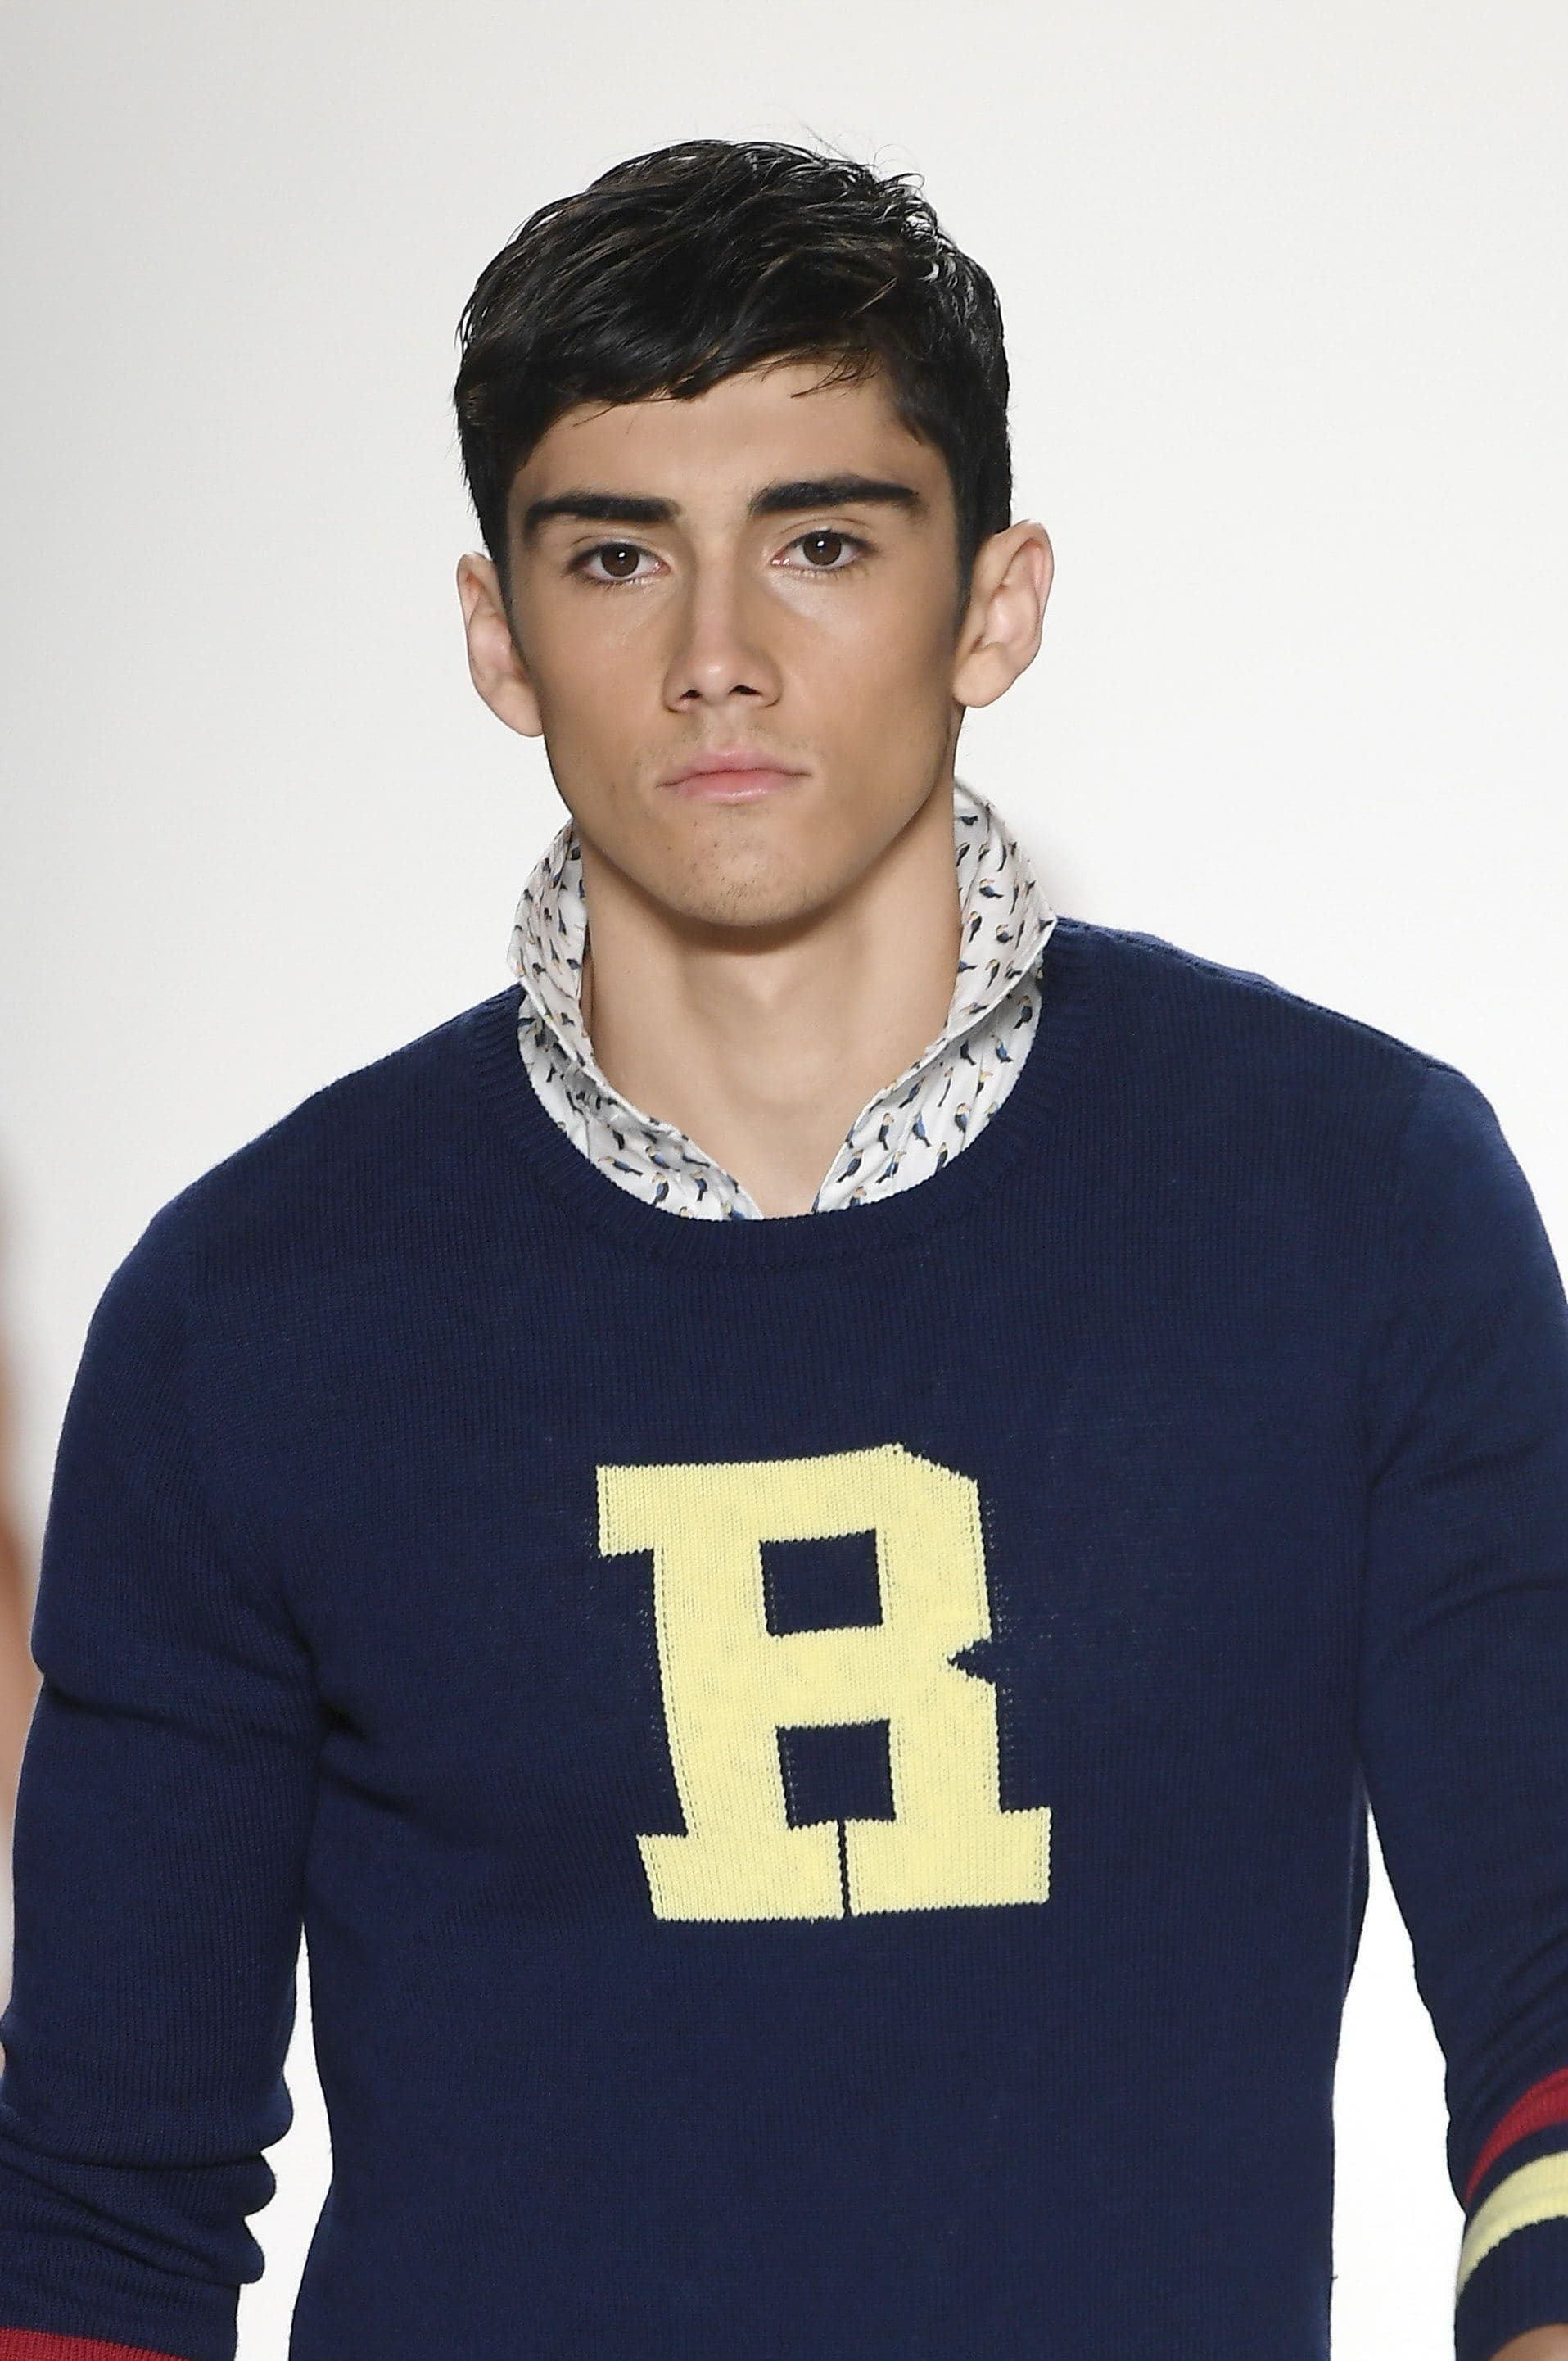 ivy league hairstyle for men